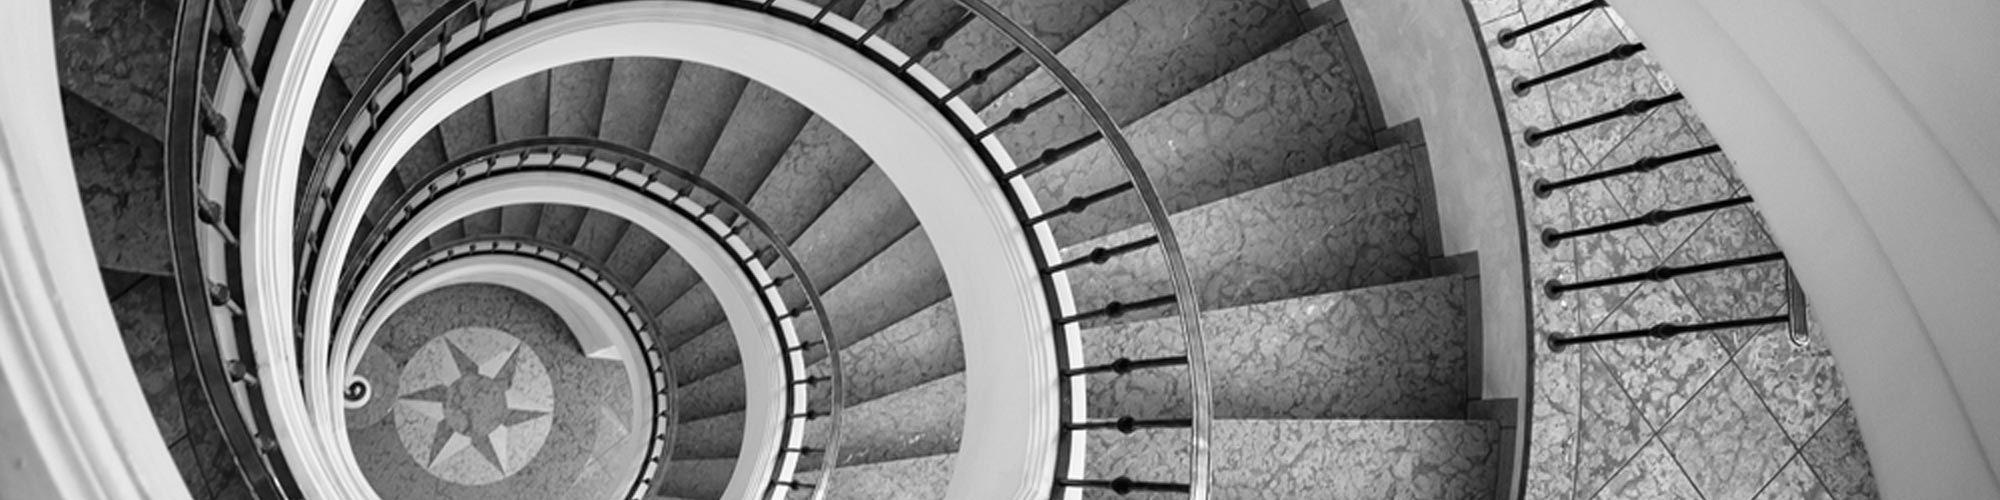 spiralstairs_good_opt